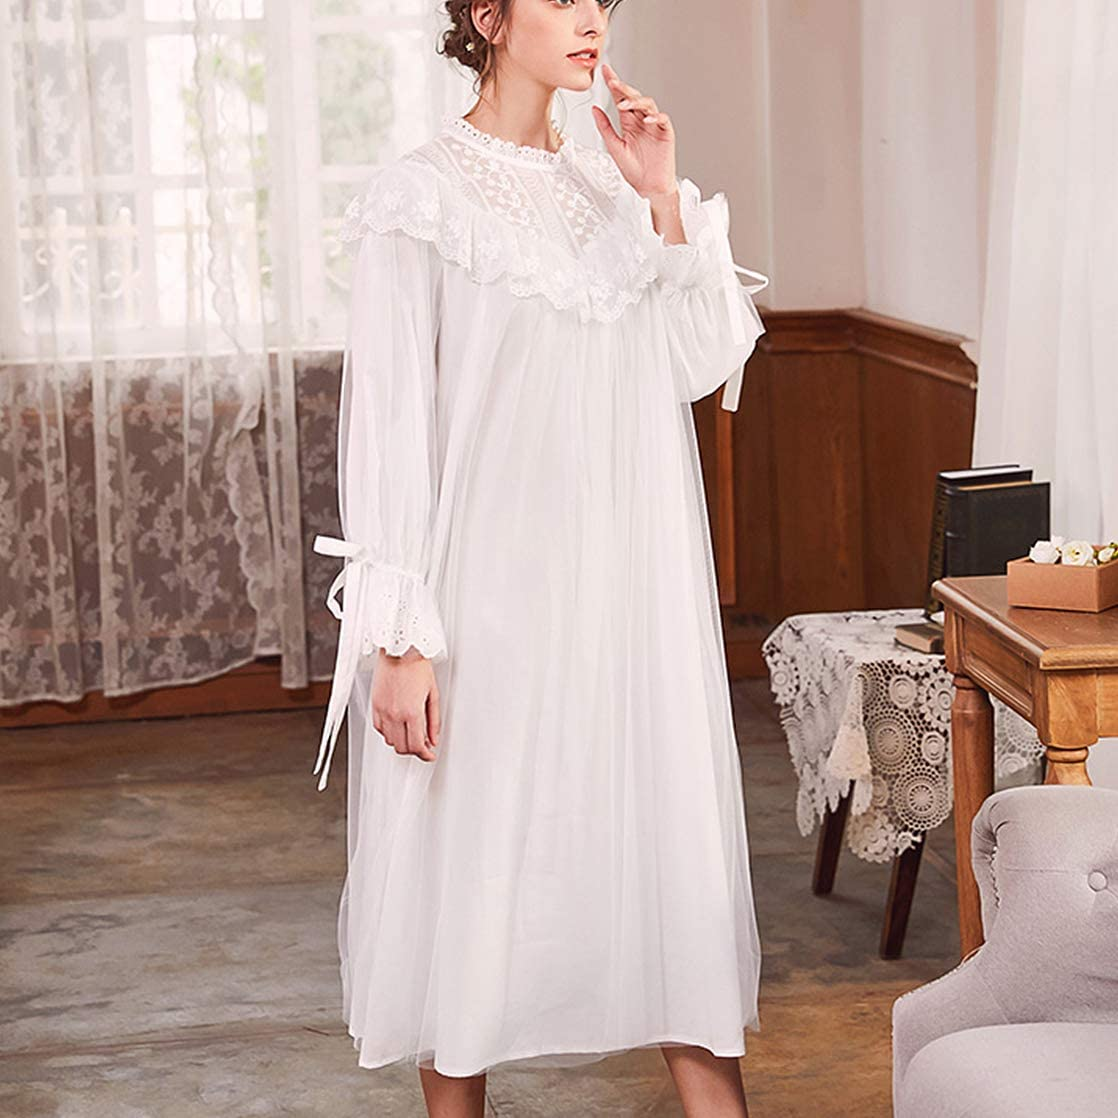 Victorian Nightgowns, Nightdress, Pajamas, Robes Womens Vintage Victorian Cotton Nightgown Princess Peignoir Girl Knit Jersey Front Lace Sleepwear S-XL $38.99 AT vintagedancer.com